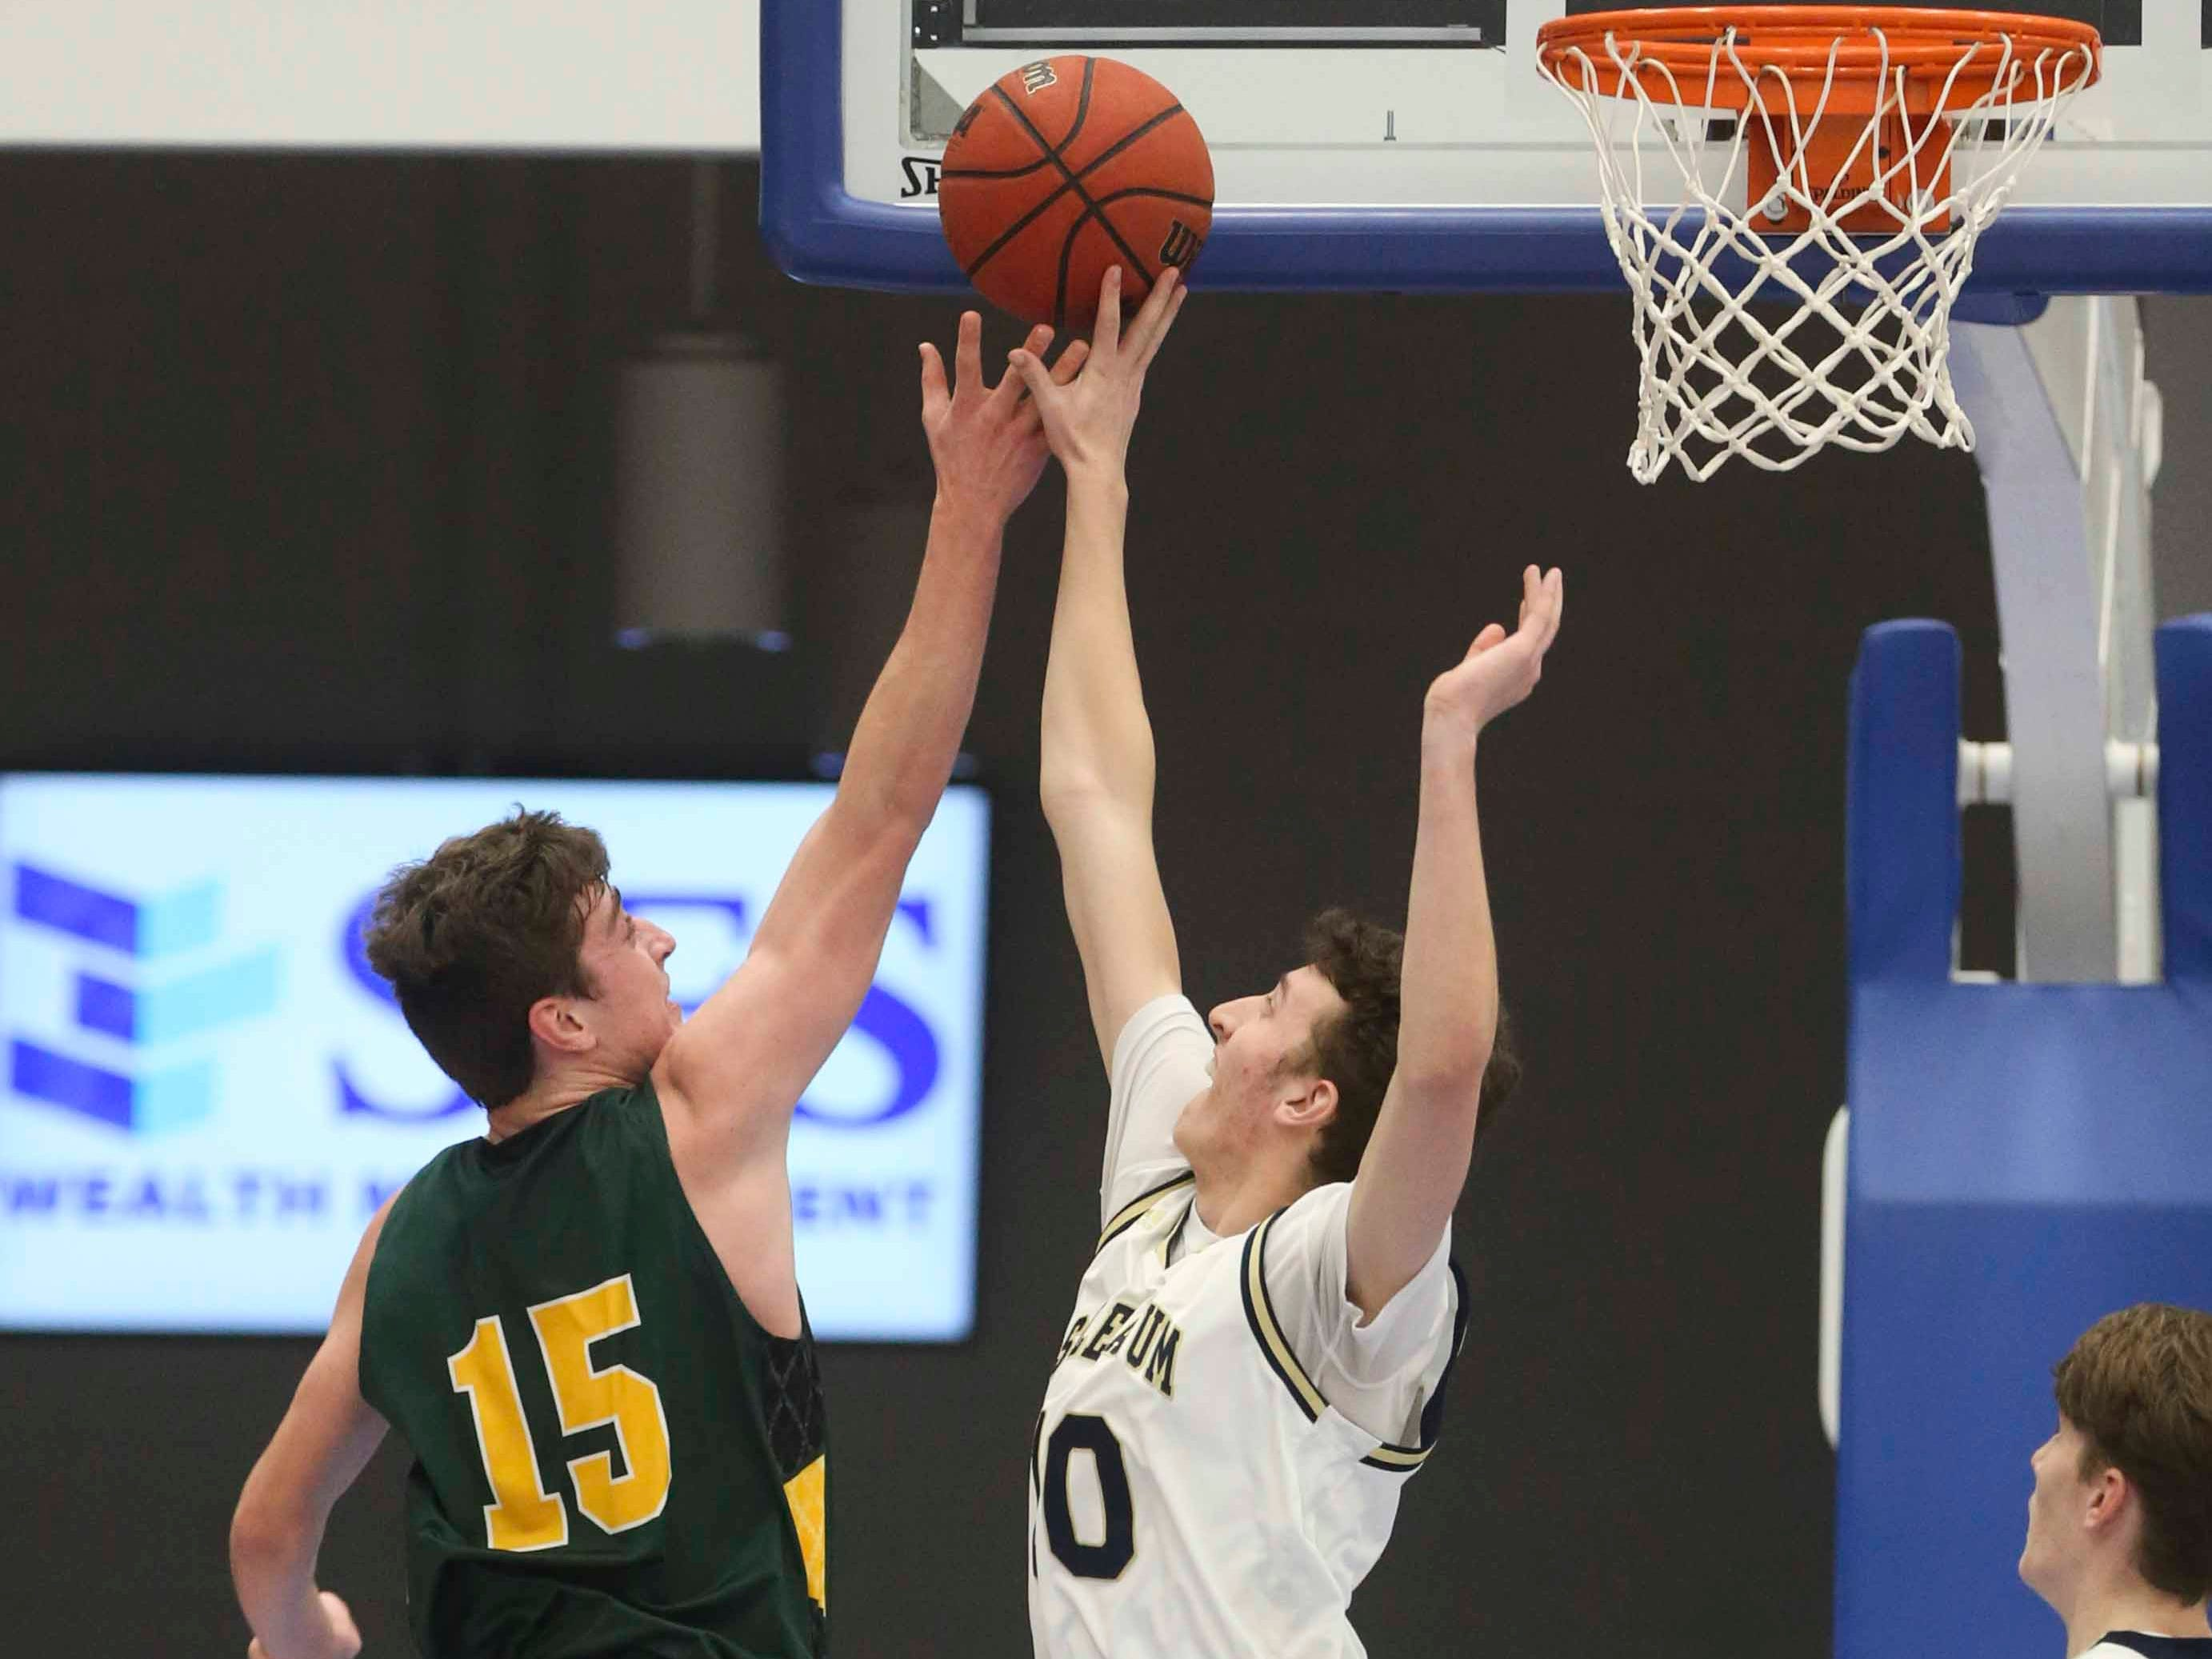 Salesianum's Jack Brown (right) stretches to get a piece of the ball against St. Mark's Victor Marcelo in the SL24 Memorial Basketball Classic at the 76ers Fieldhouse in Wilmington Friday.